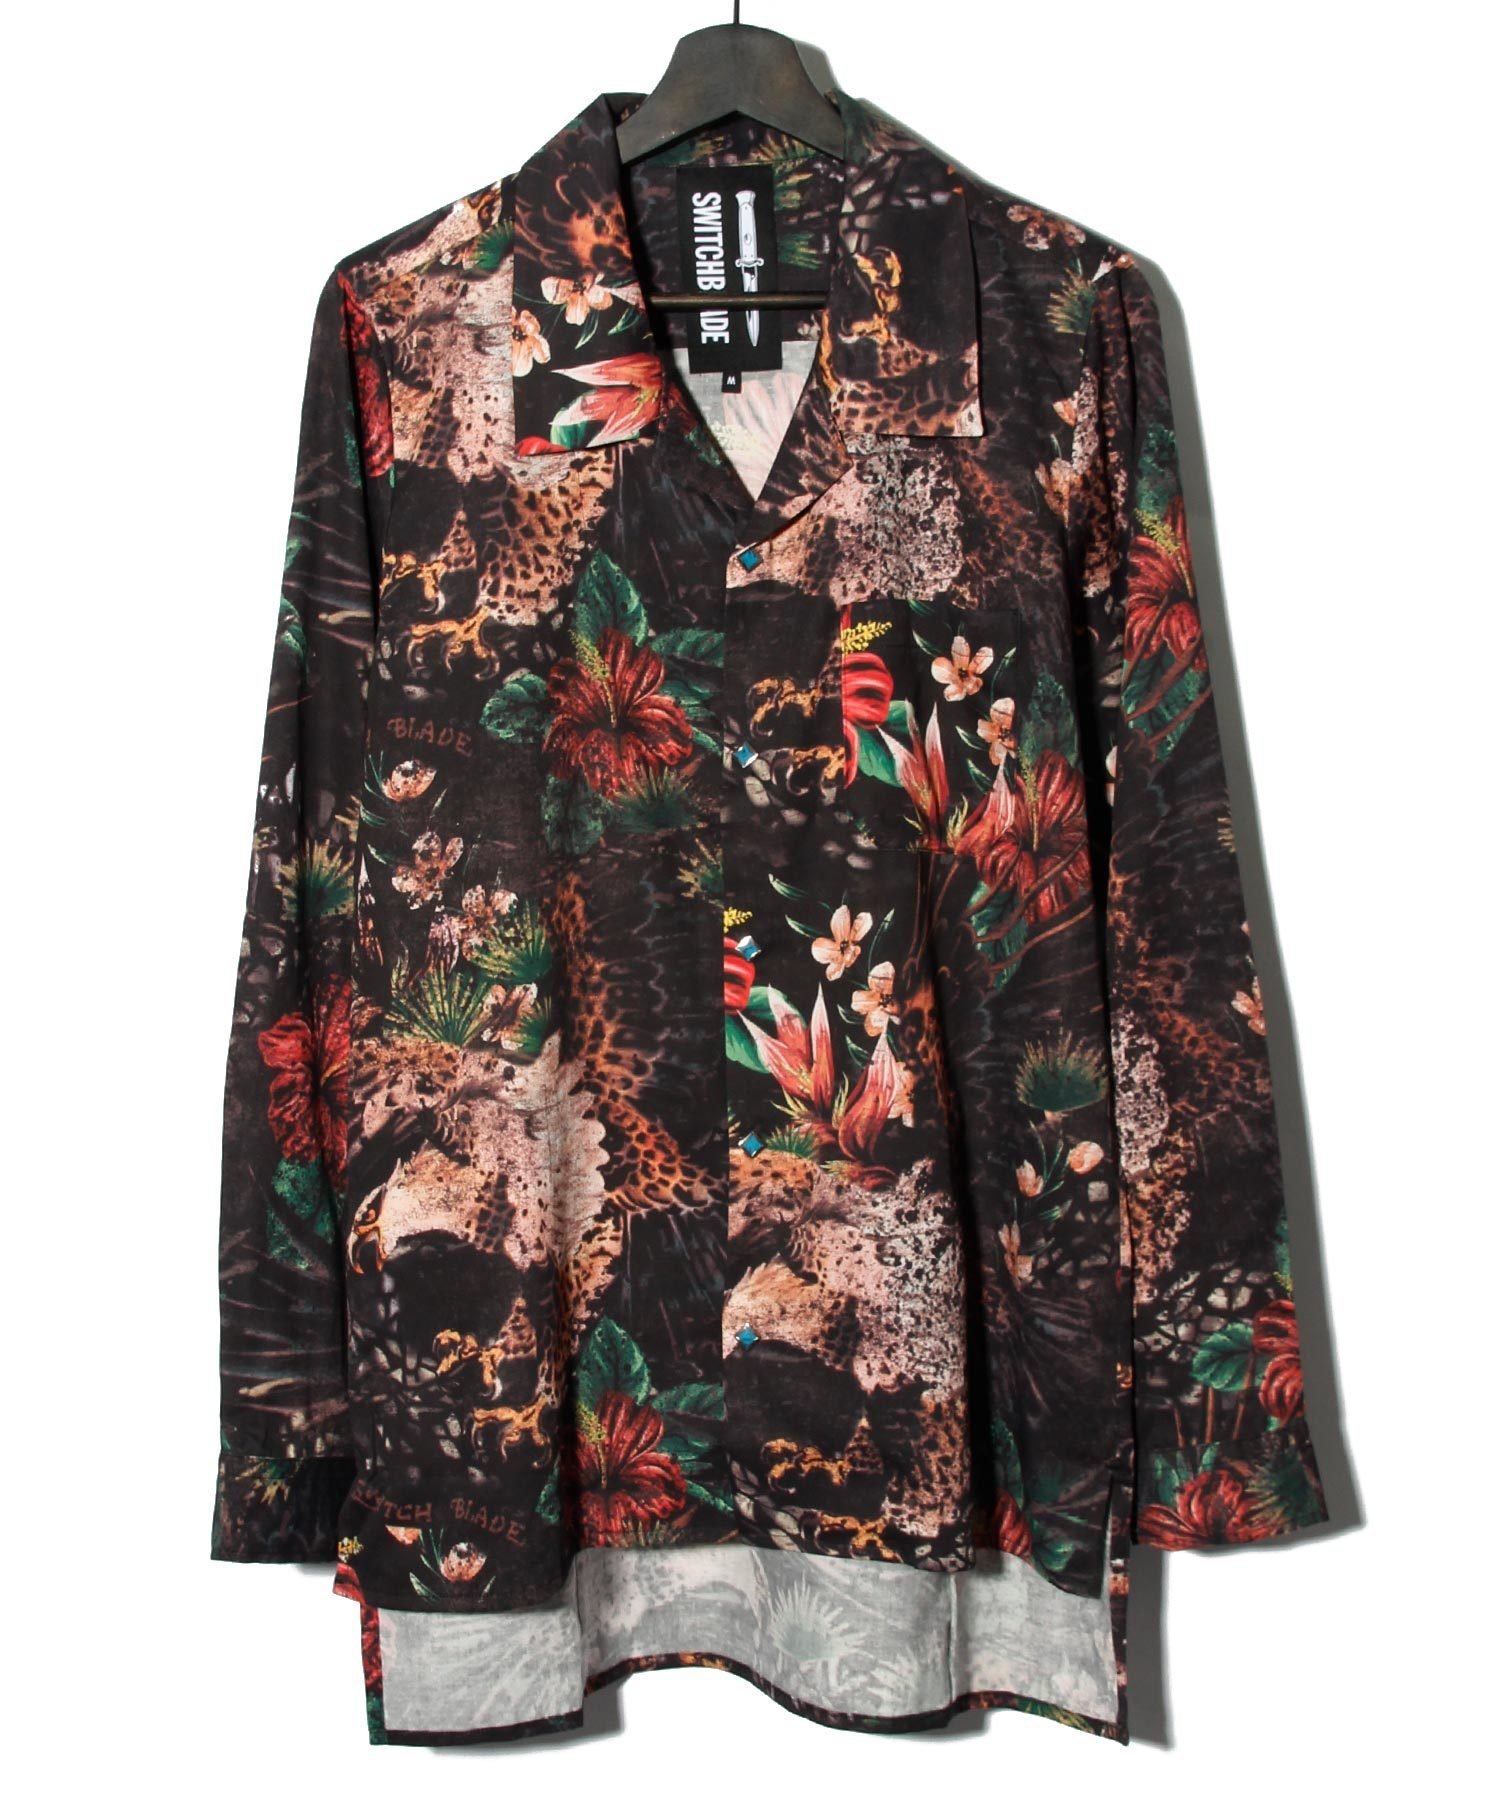 EAGLE FLOWER SHIRT